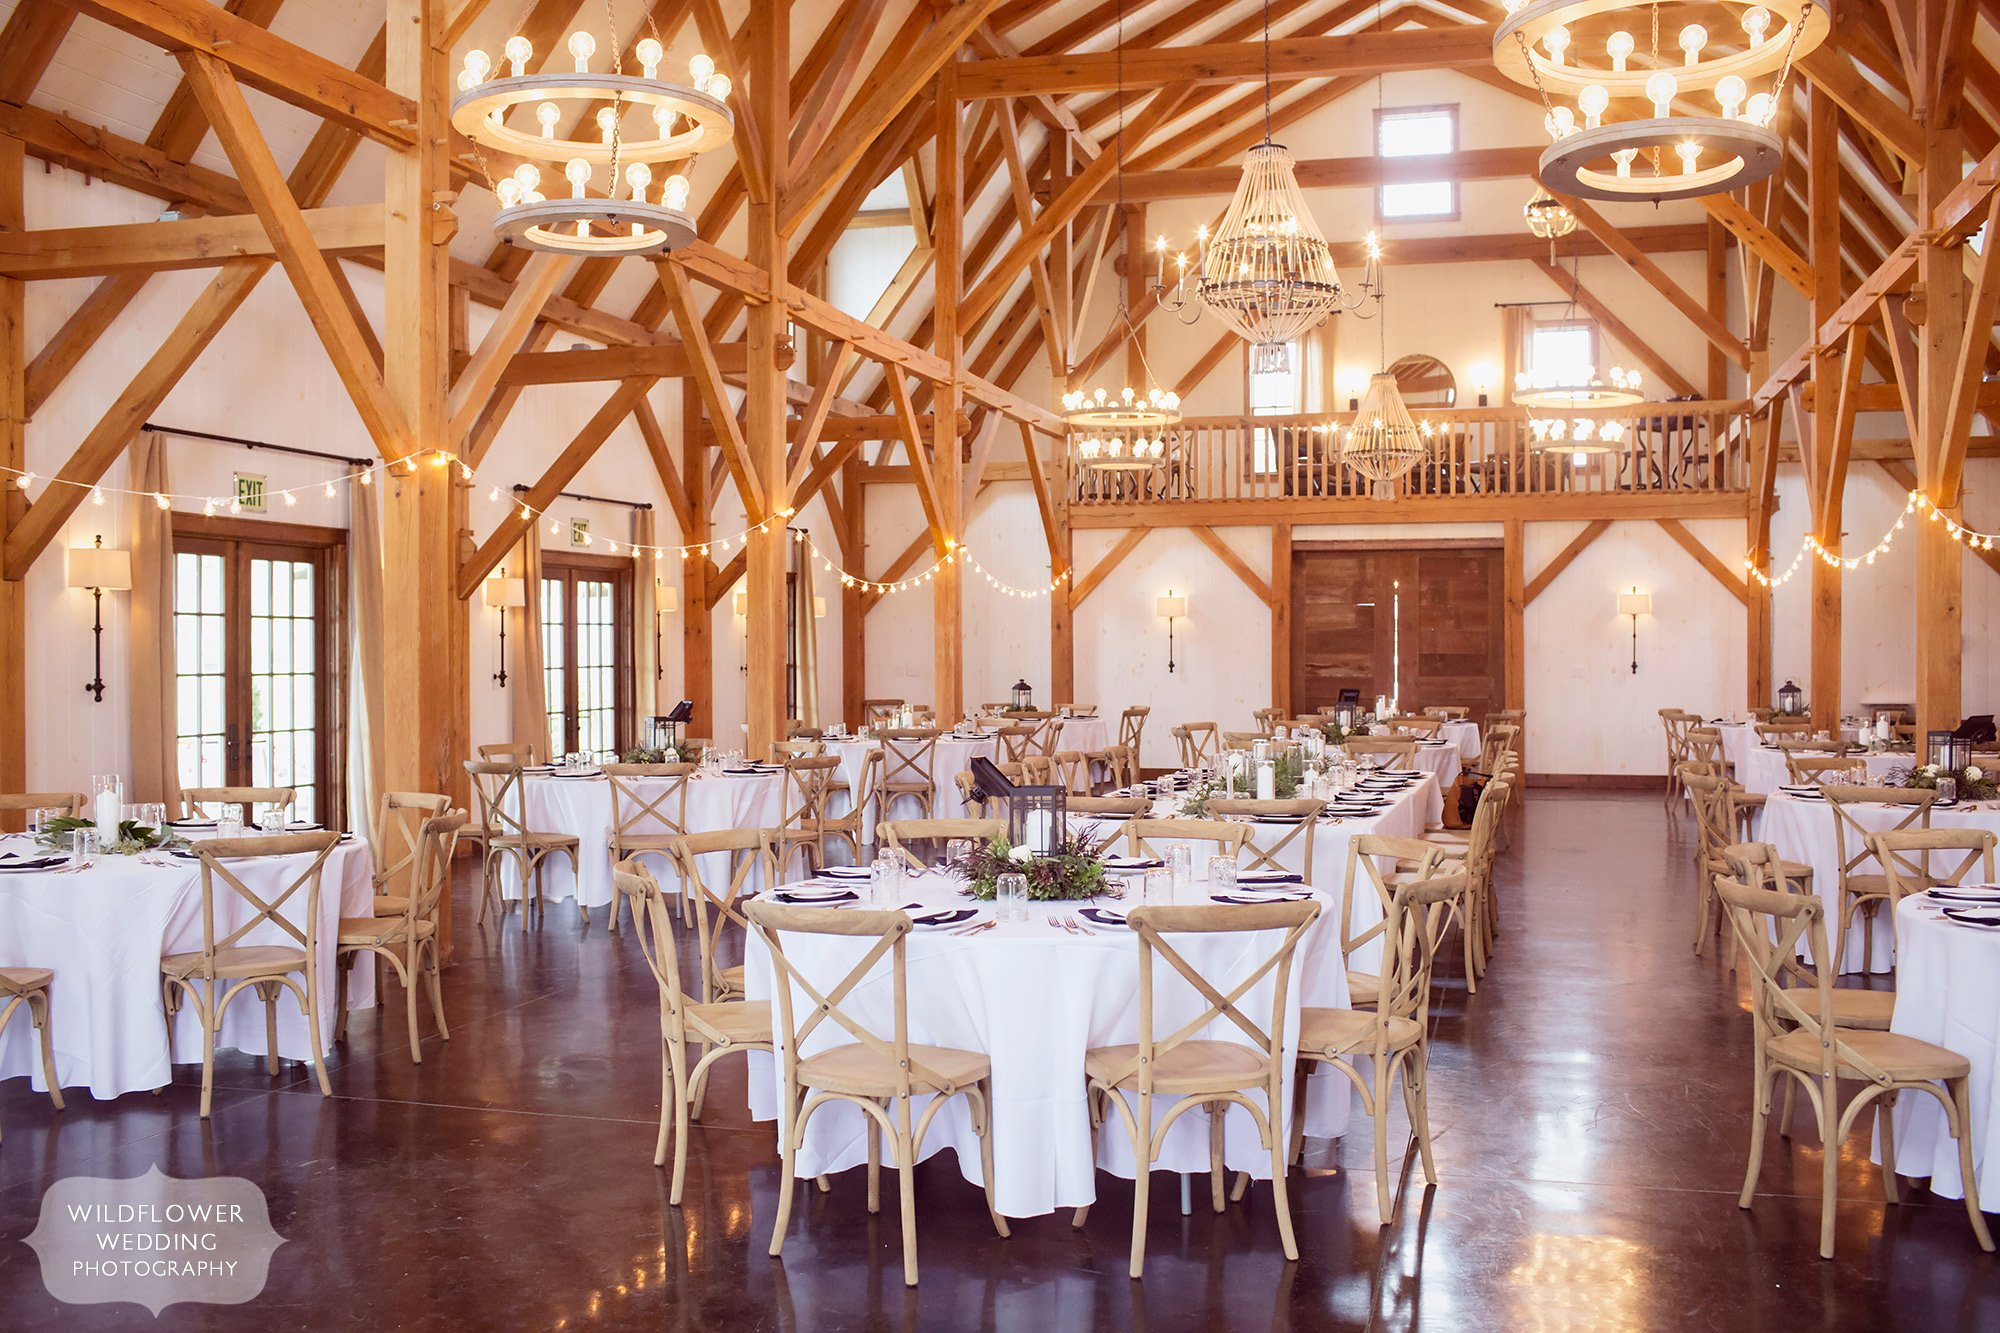 View of the inside of this beautiful timber frame wedding barn venue at the Blue Bell Farm just outside of Columbia, MO.